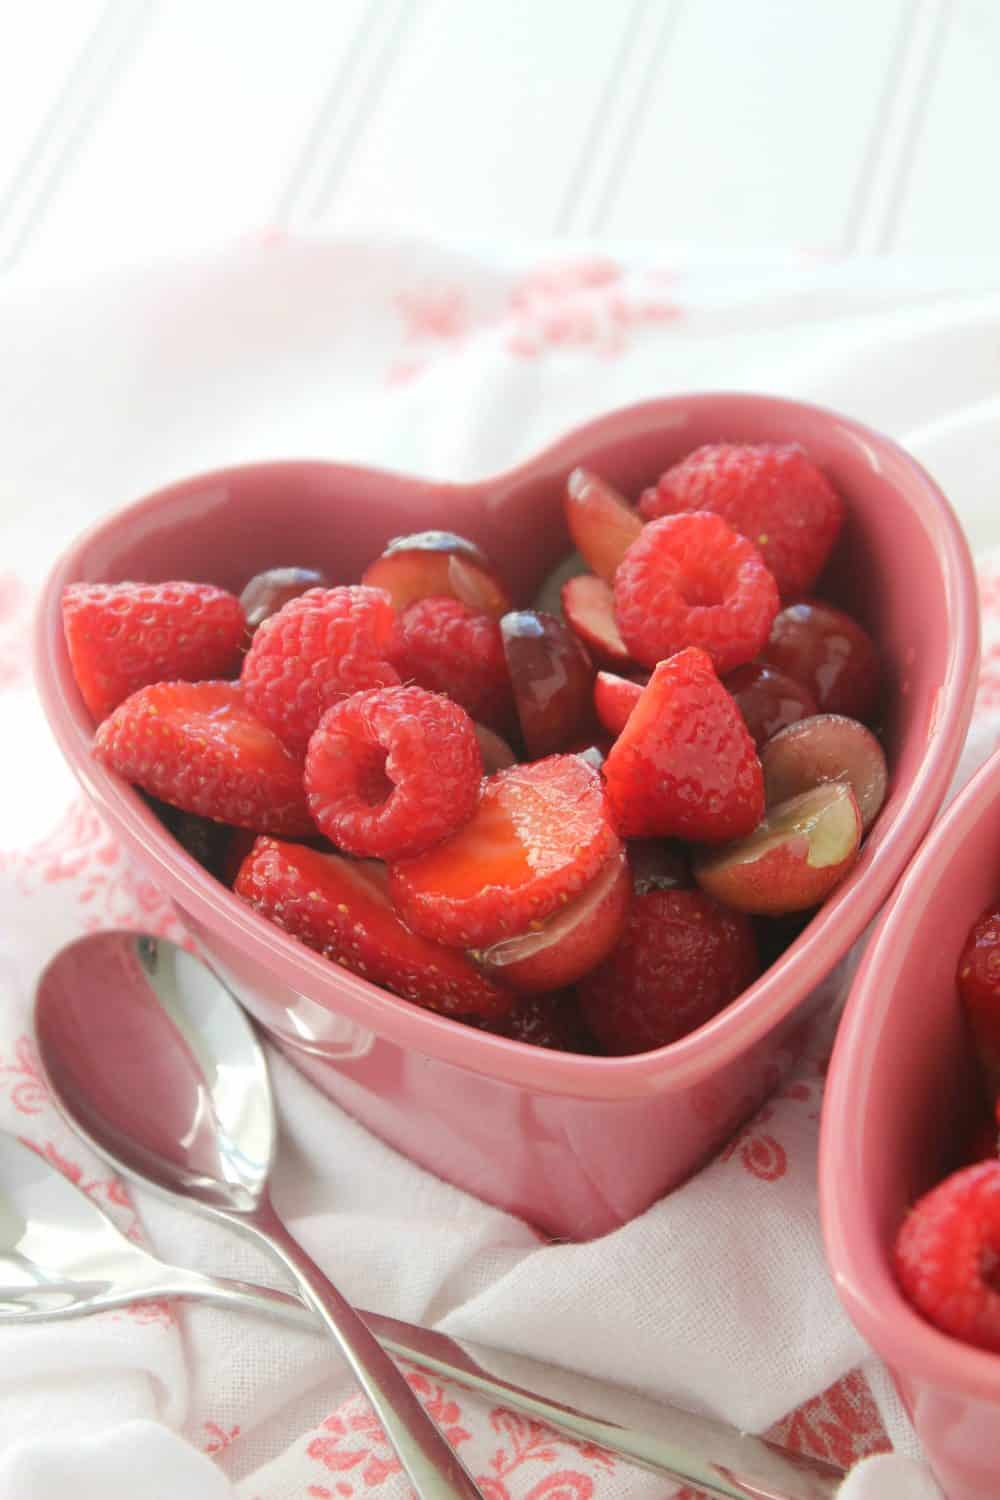 Sweetheart fruit salad for a healthy valentines dessert